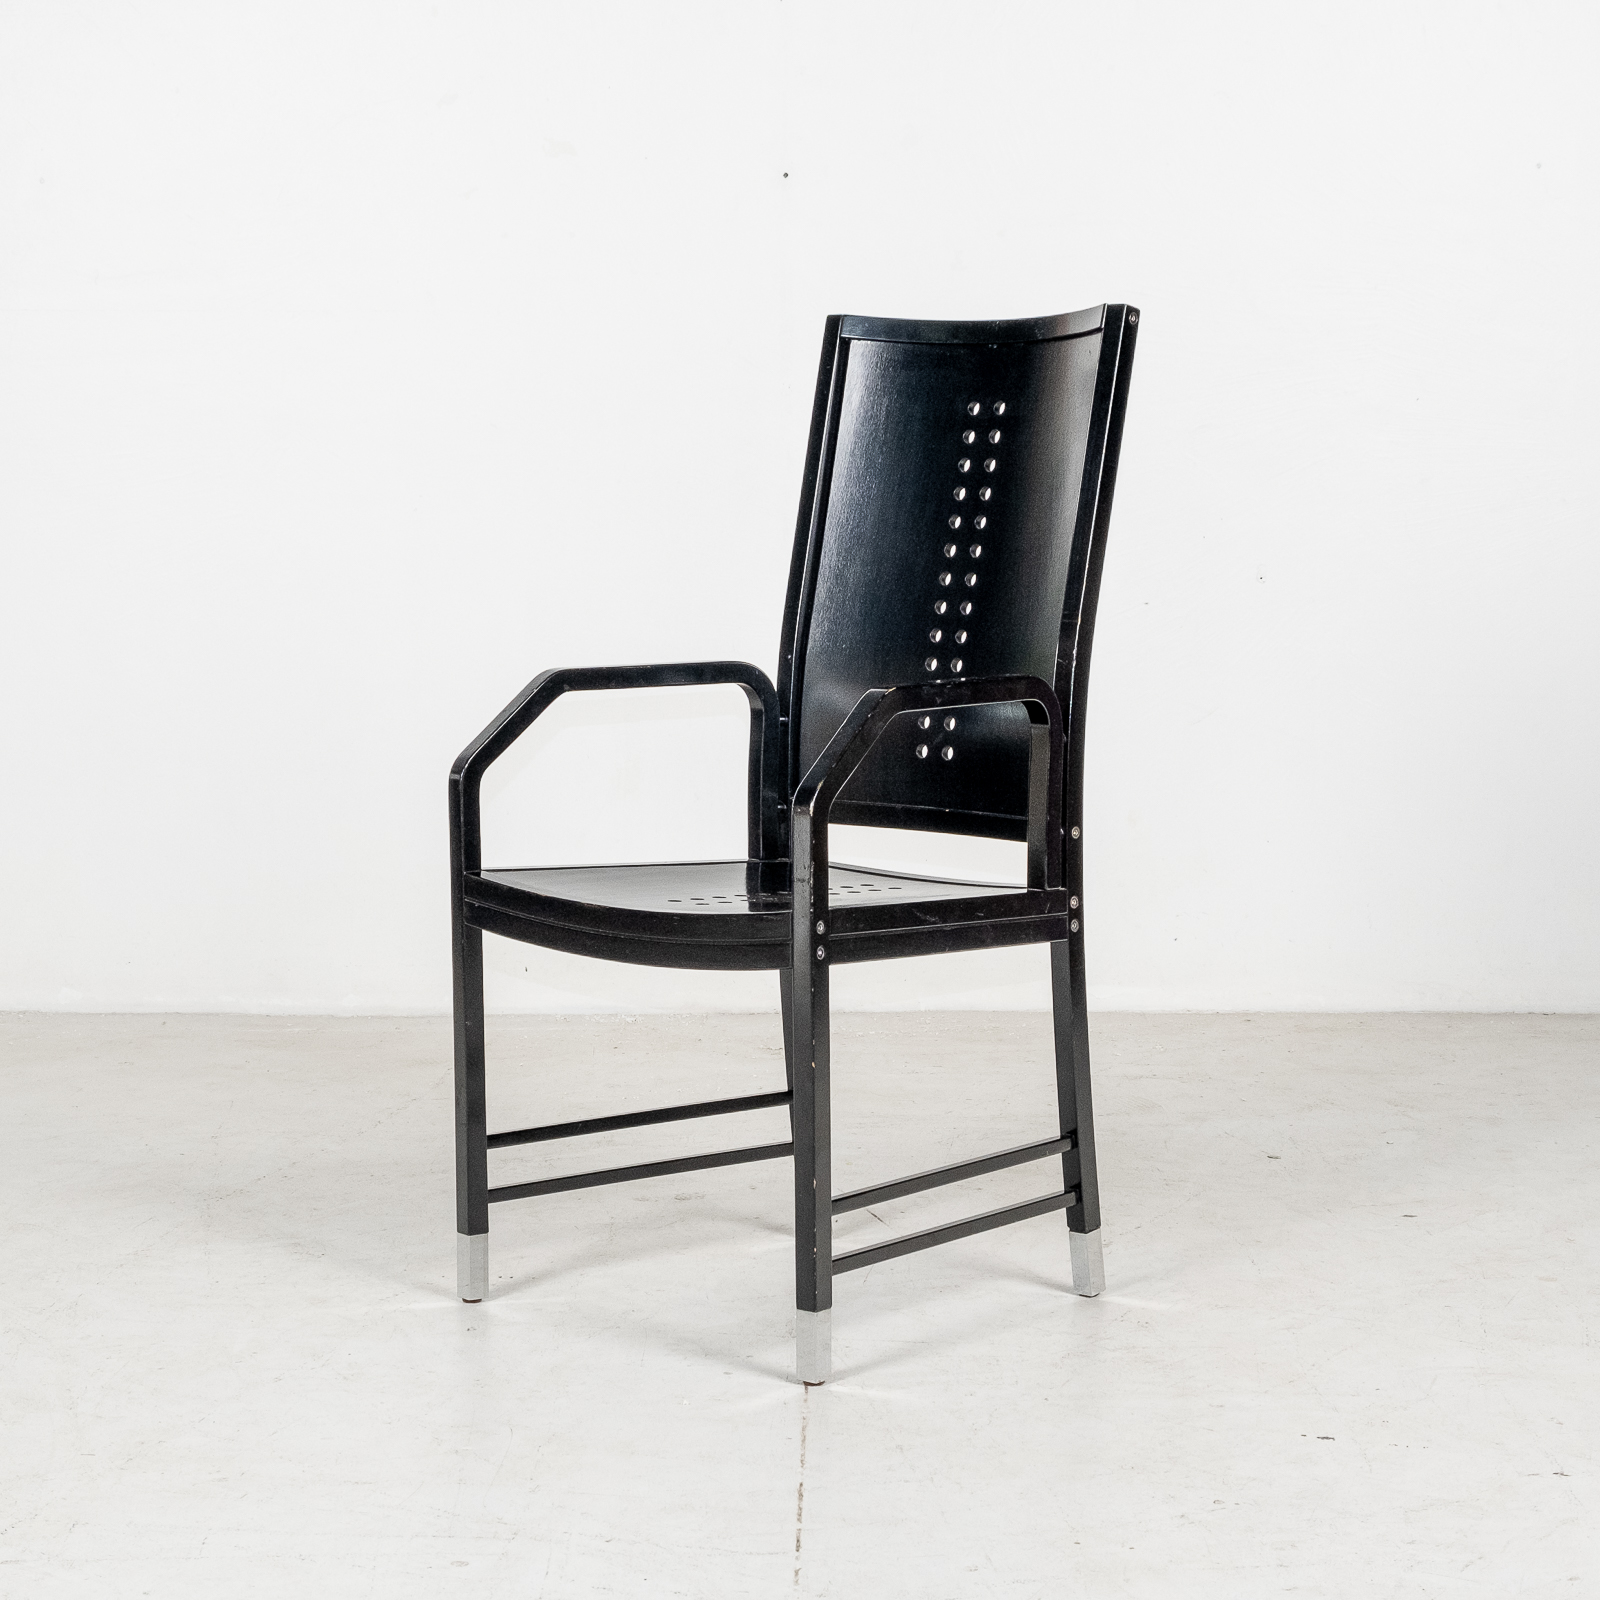 Thonet Chair In Black Hoffmann Style, 1980s, Germany04